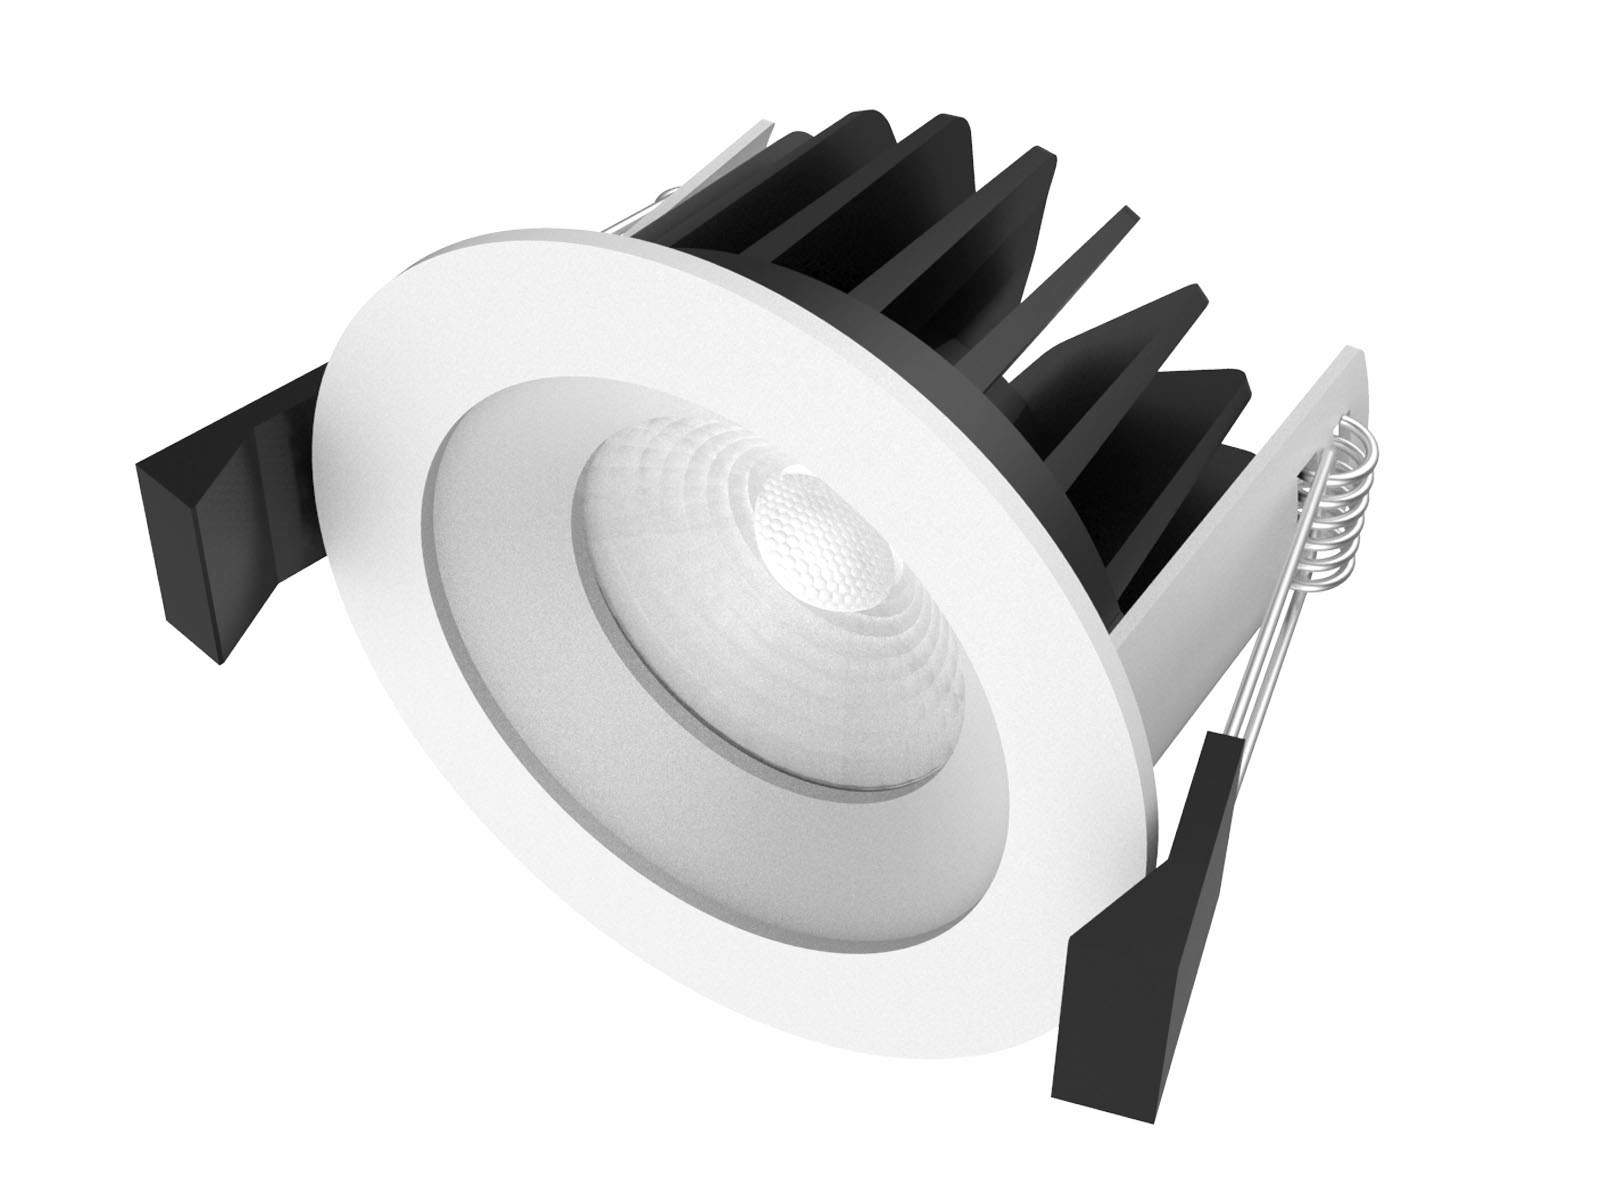 LED downlight LED downlight PROLUMEN DL64 DIM white  10W 900lm CRI80 36° IP40 3000K warm white